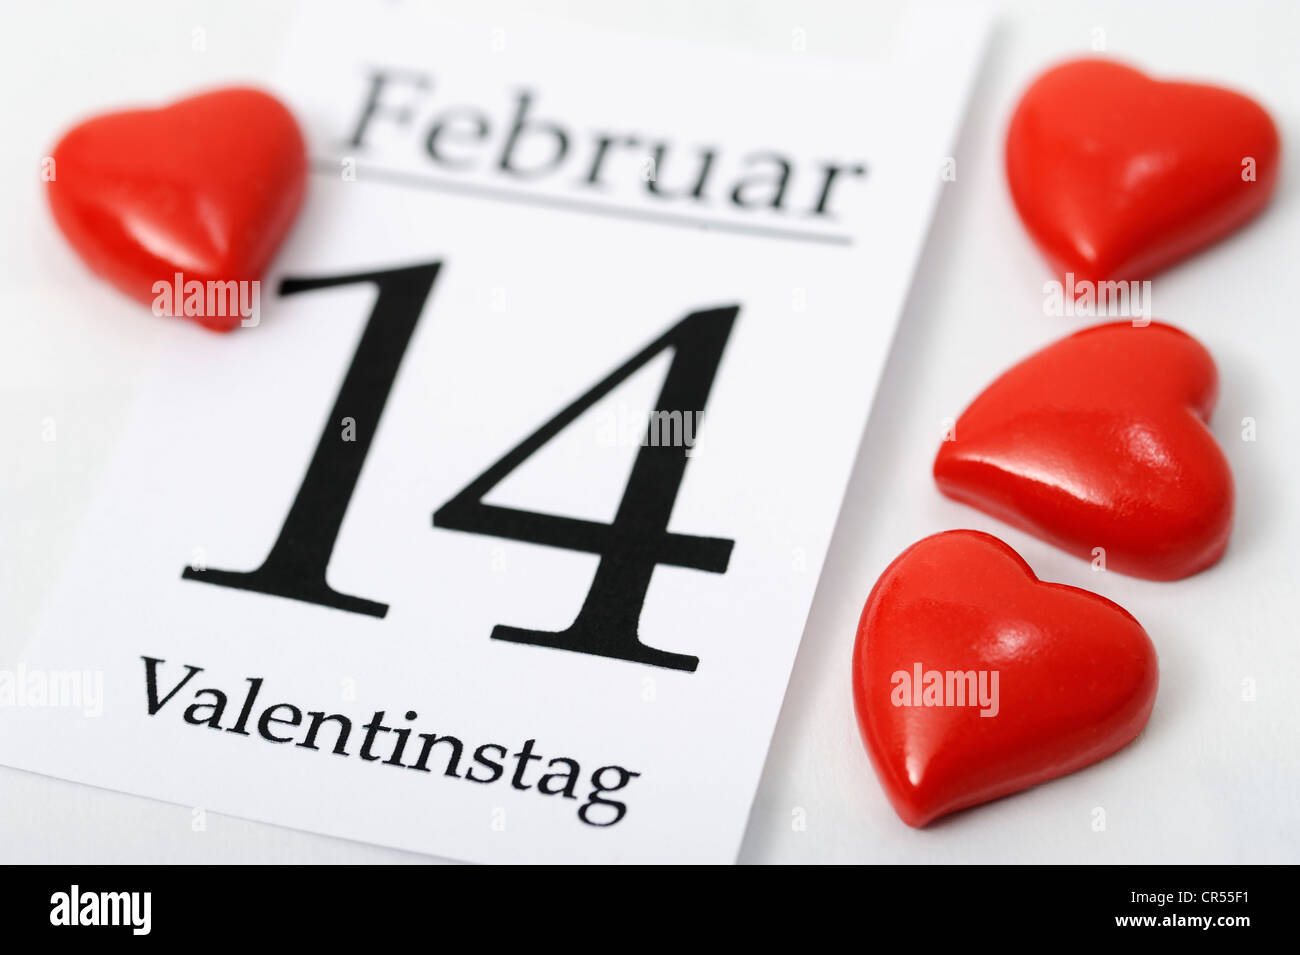 Calendar sheet for Valentine's Day on 14 February with red hearts - Stock Image